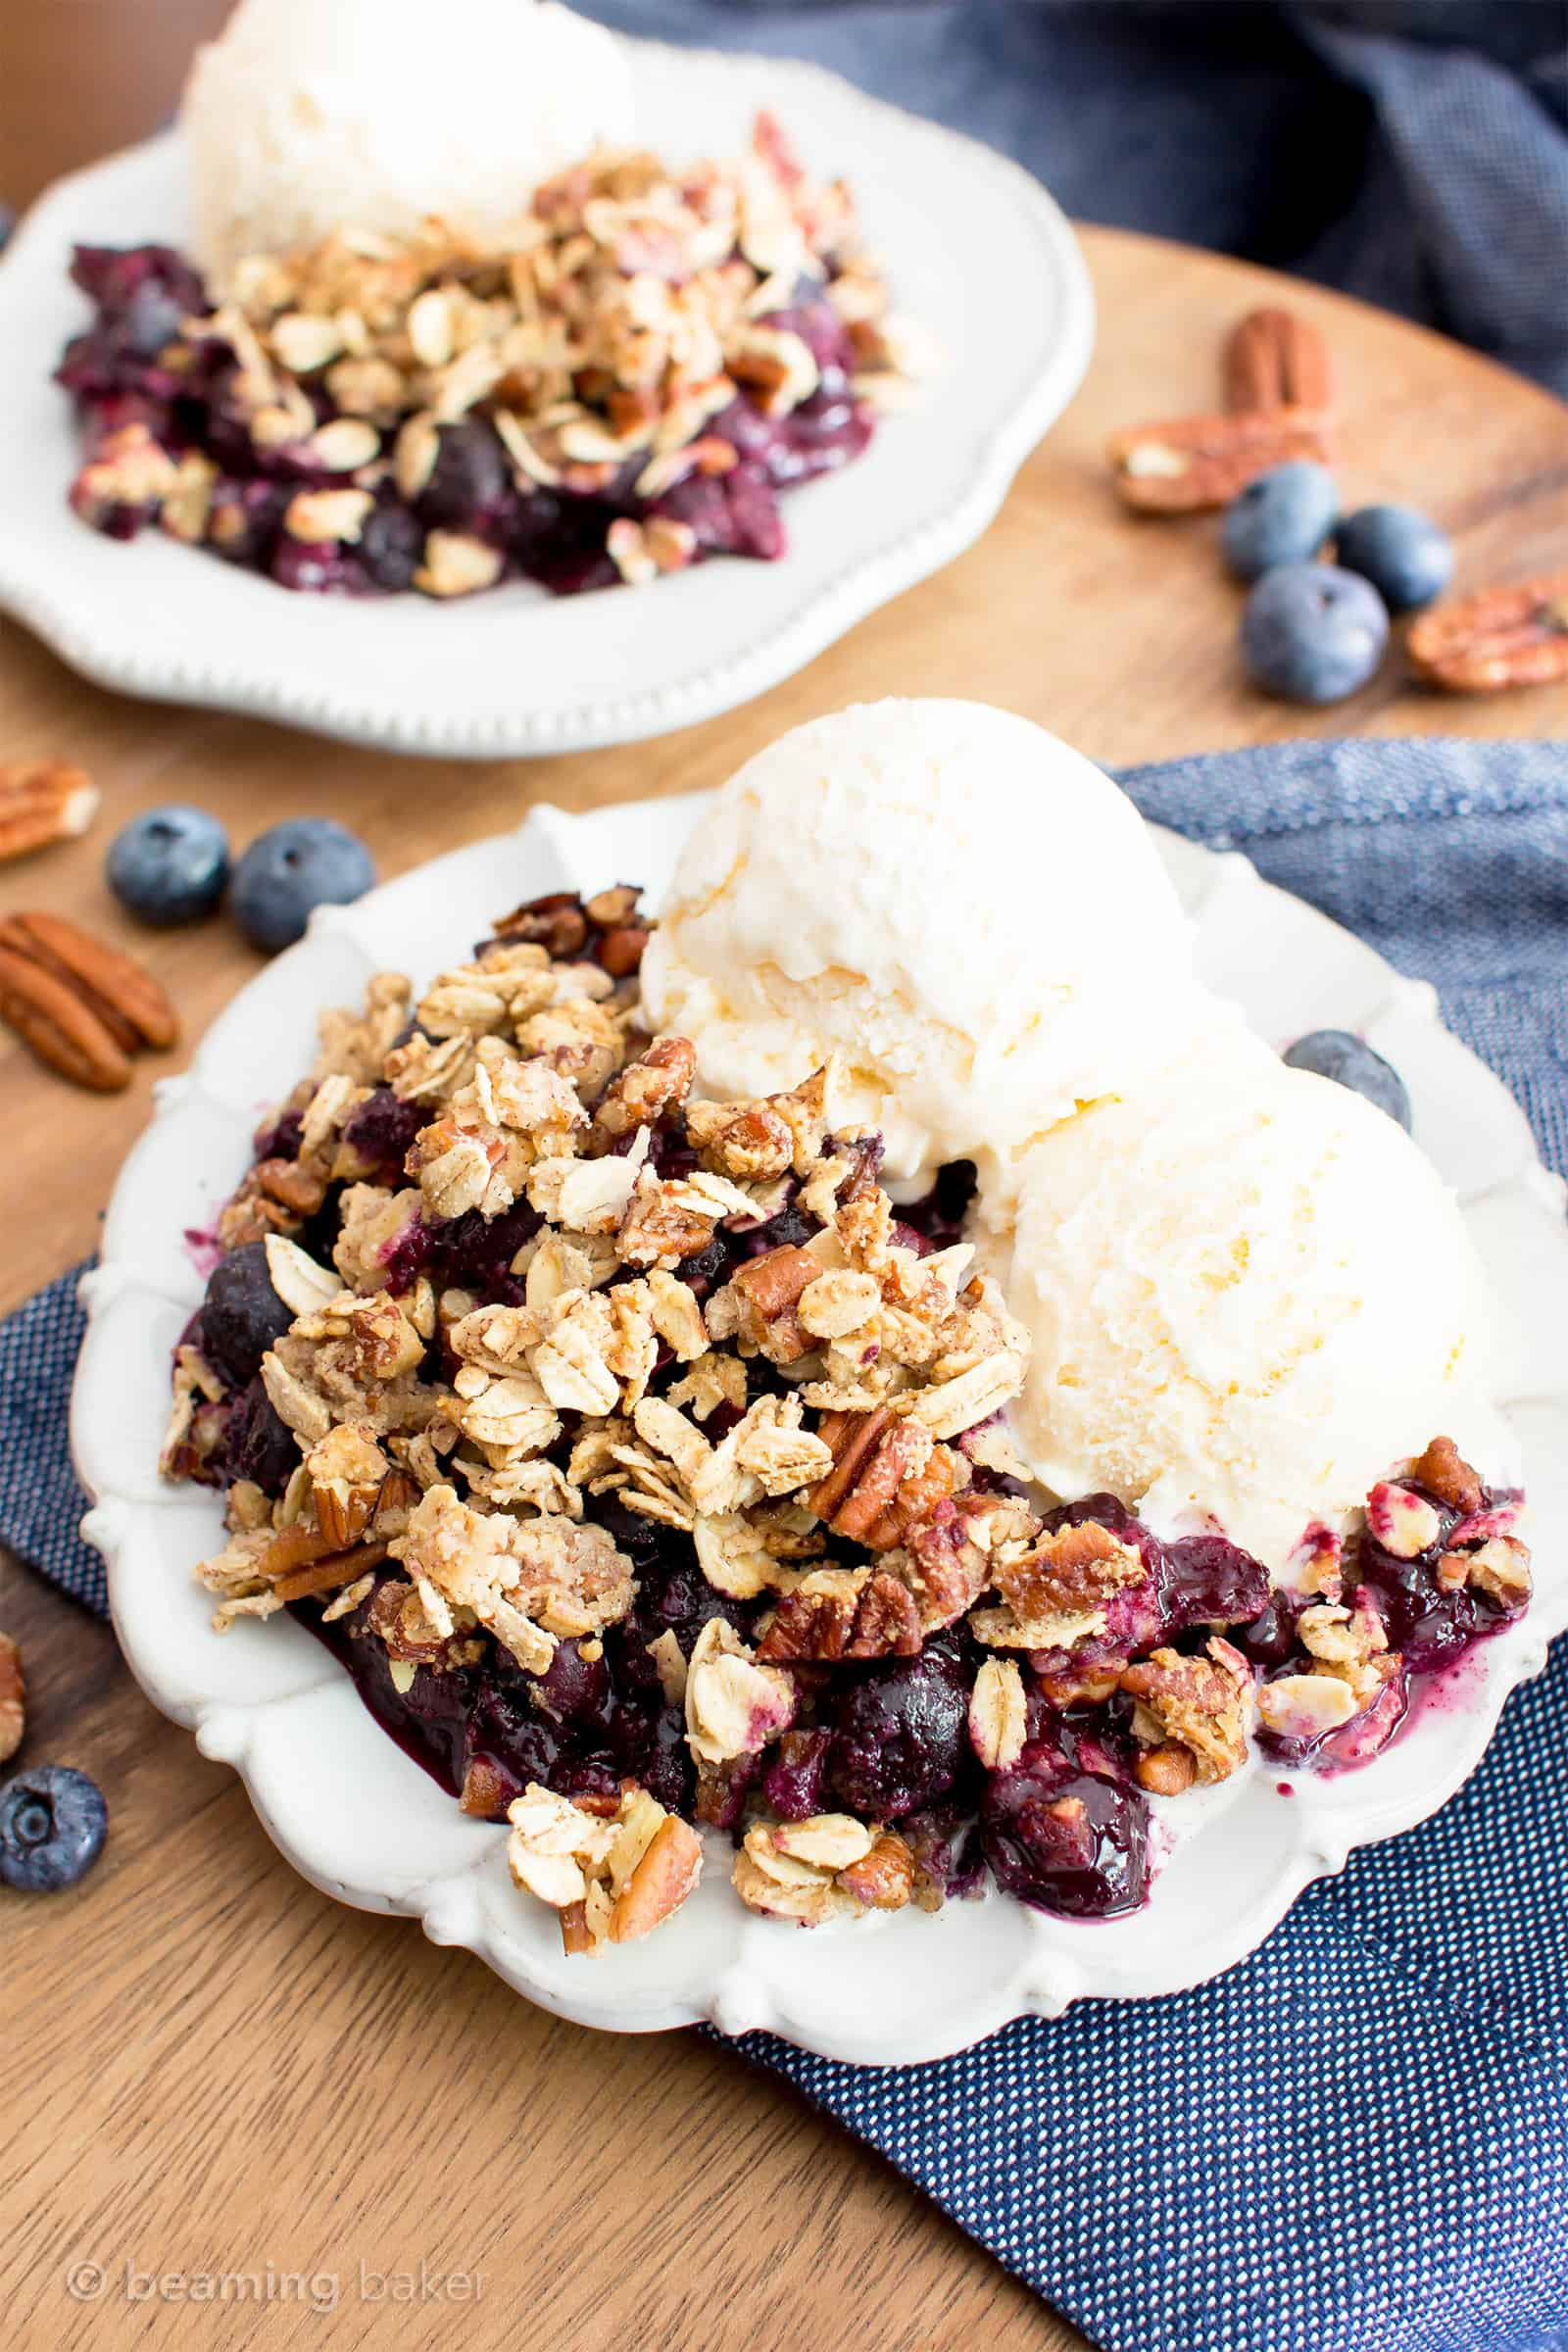 Forum on this topic: Sugar and Spice Blueberry Crisp, sugar-and-spice-blueberry-crisp/